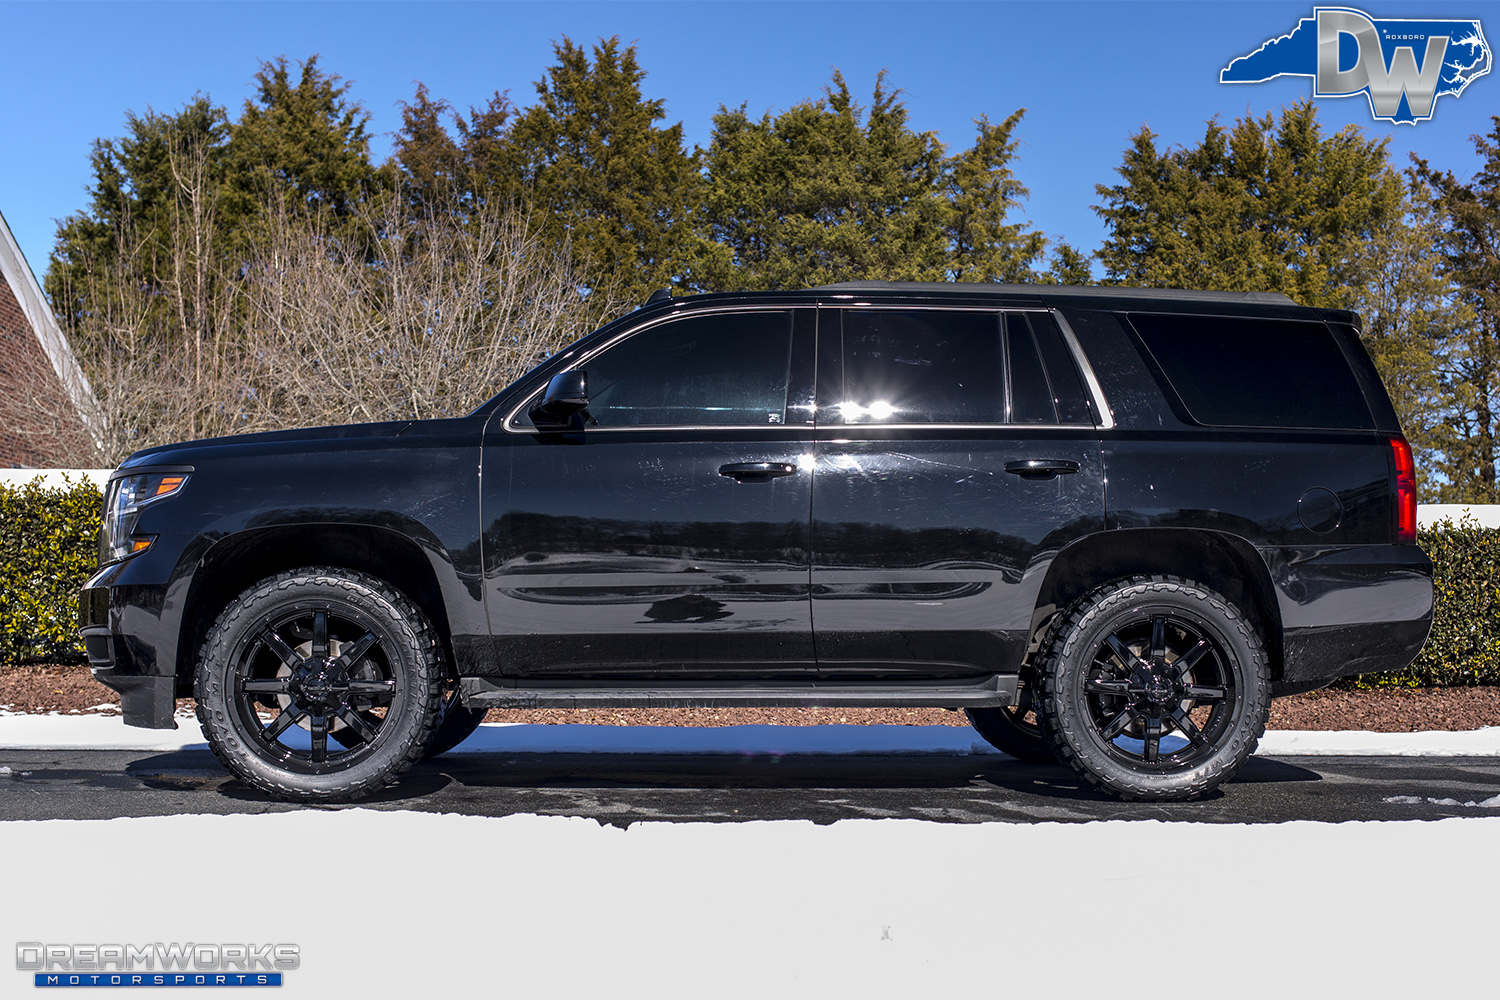 Blacked Out Chevy Tahoe Dreamworks Motorsports